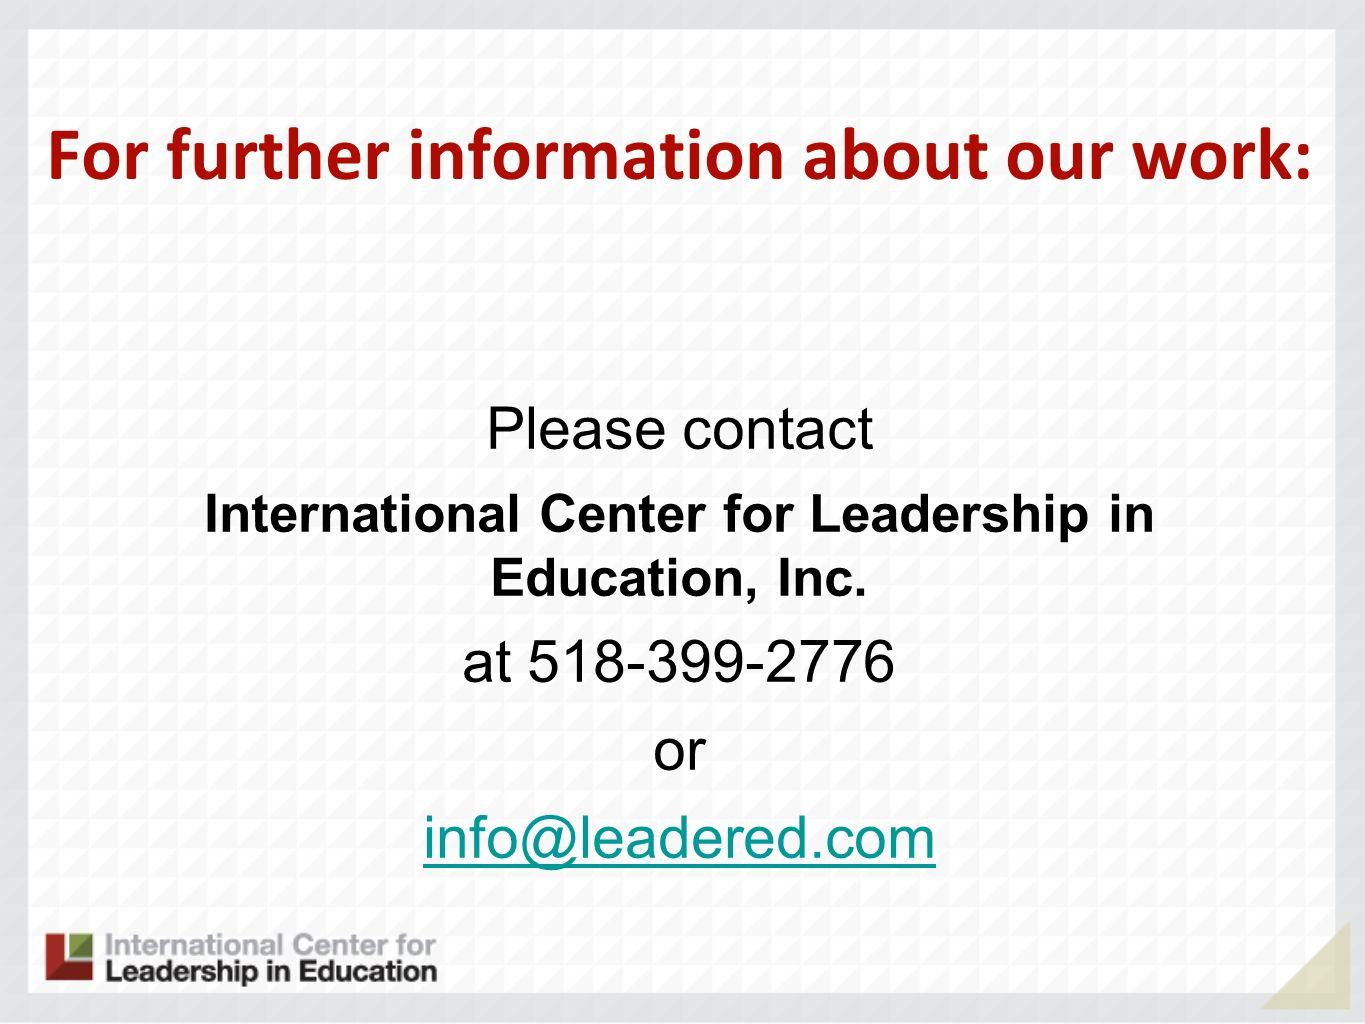 For further information about our work: Please contact International Center for Leadership in Education, Inc. at 518-399-2776 or info@leadered.com